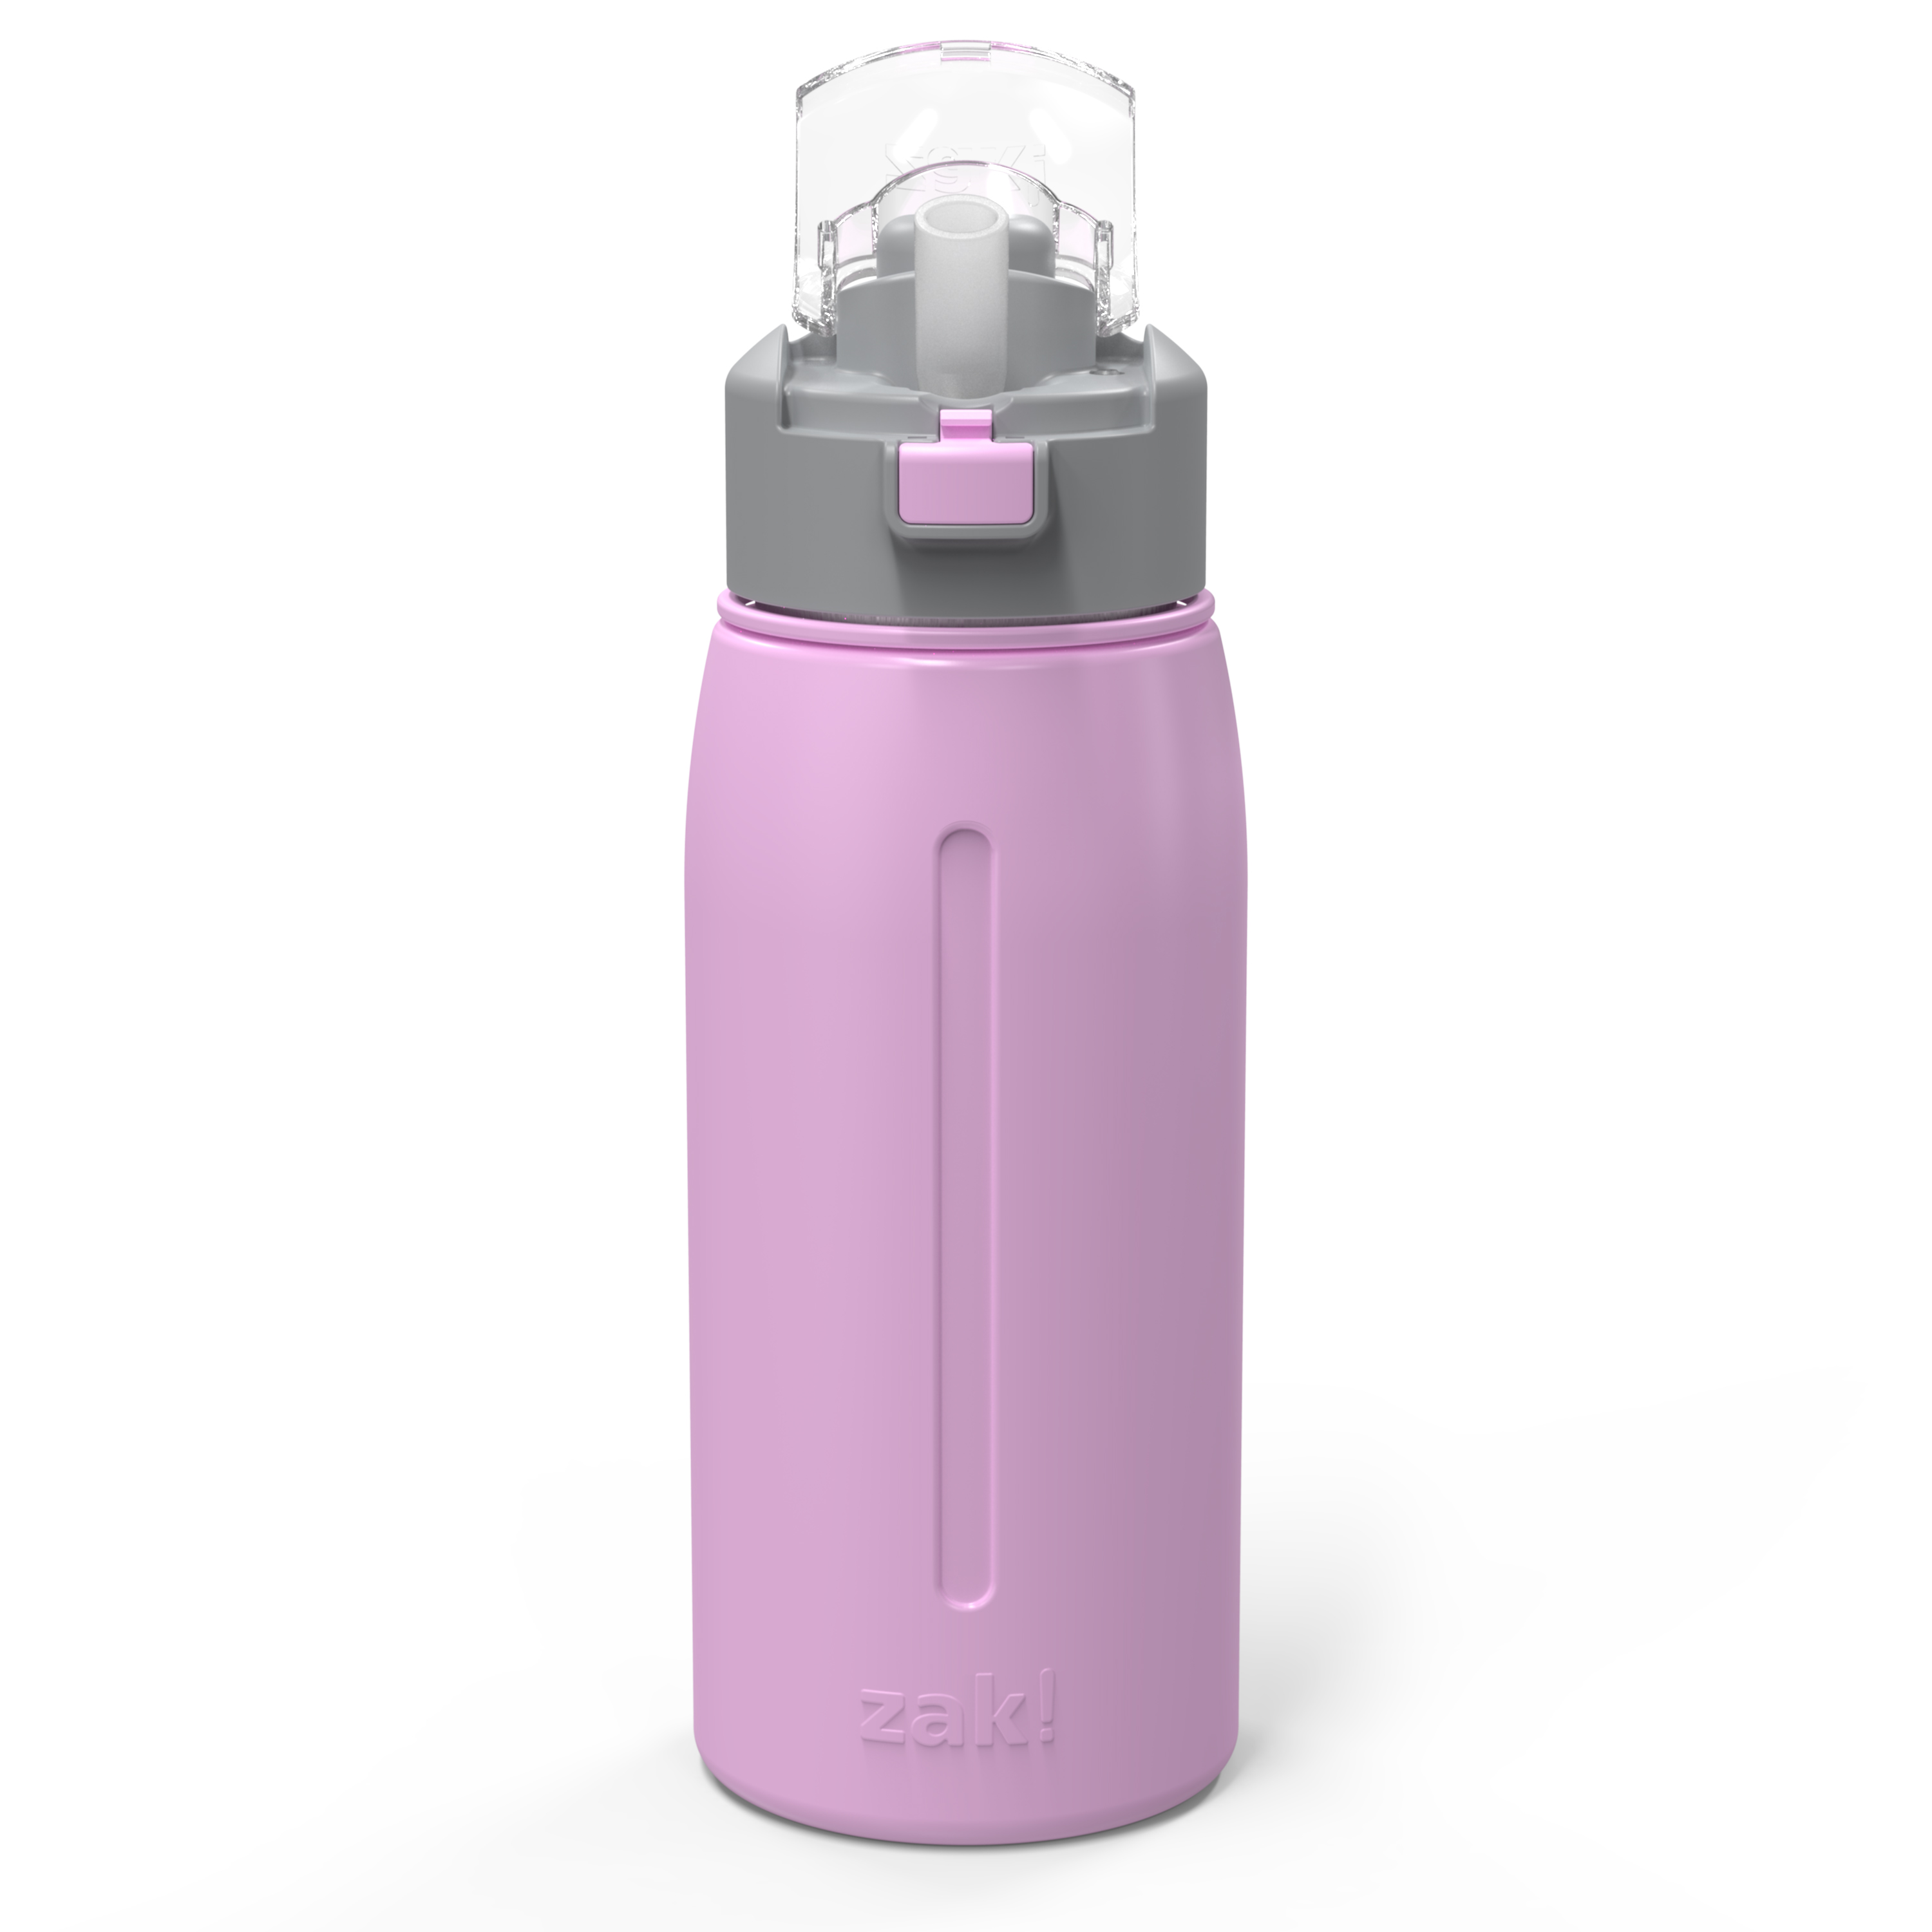 Genesis 24 ounce Vacuum Insulated Stainless Steel Tumbler, Lilac slideshow image 5